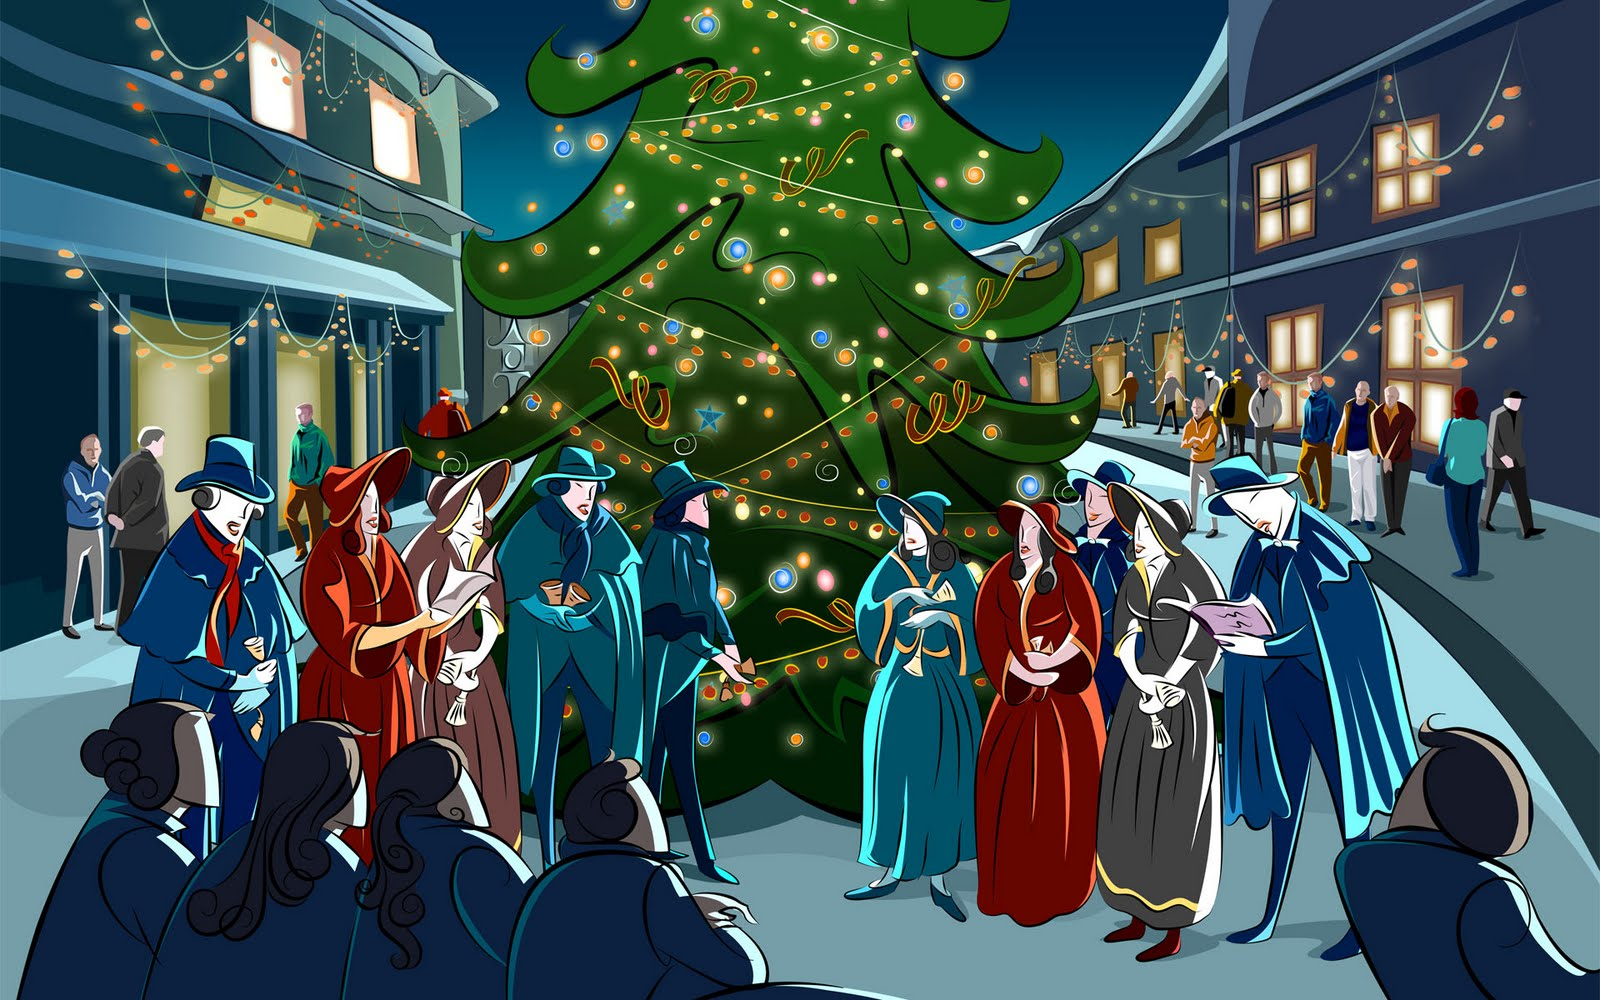 Christmas Clip Art Religious.Christmas Wallpapers And Images And Photos Christmas Clip